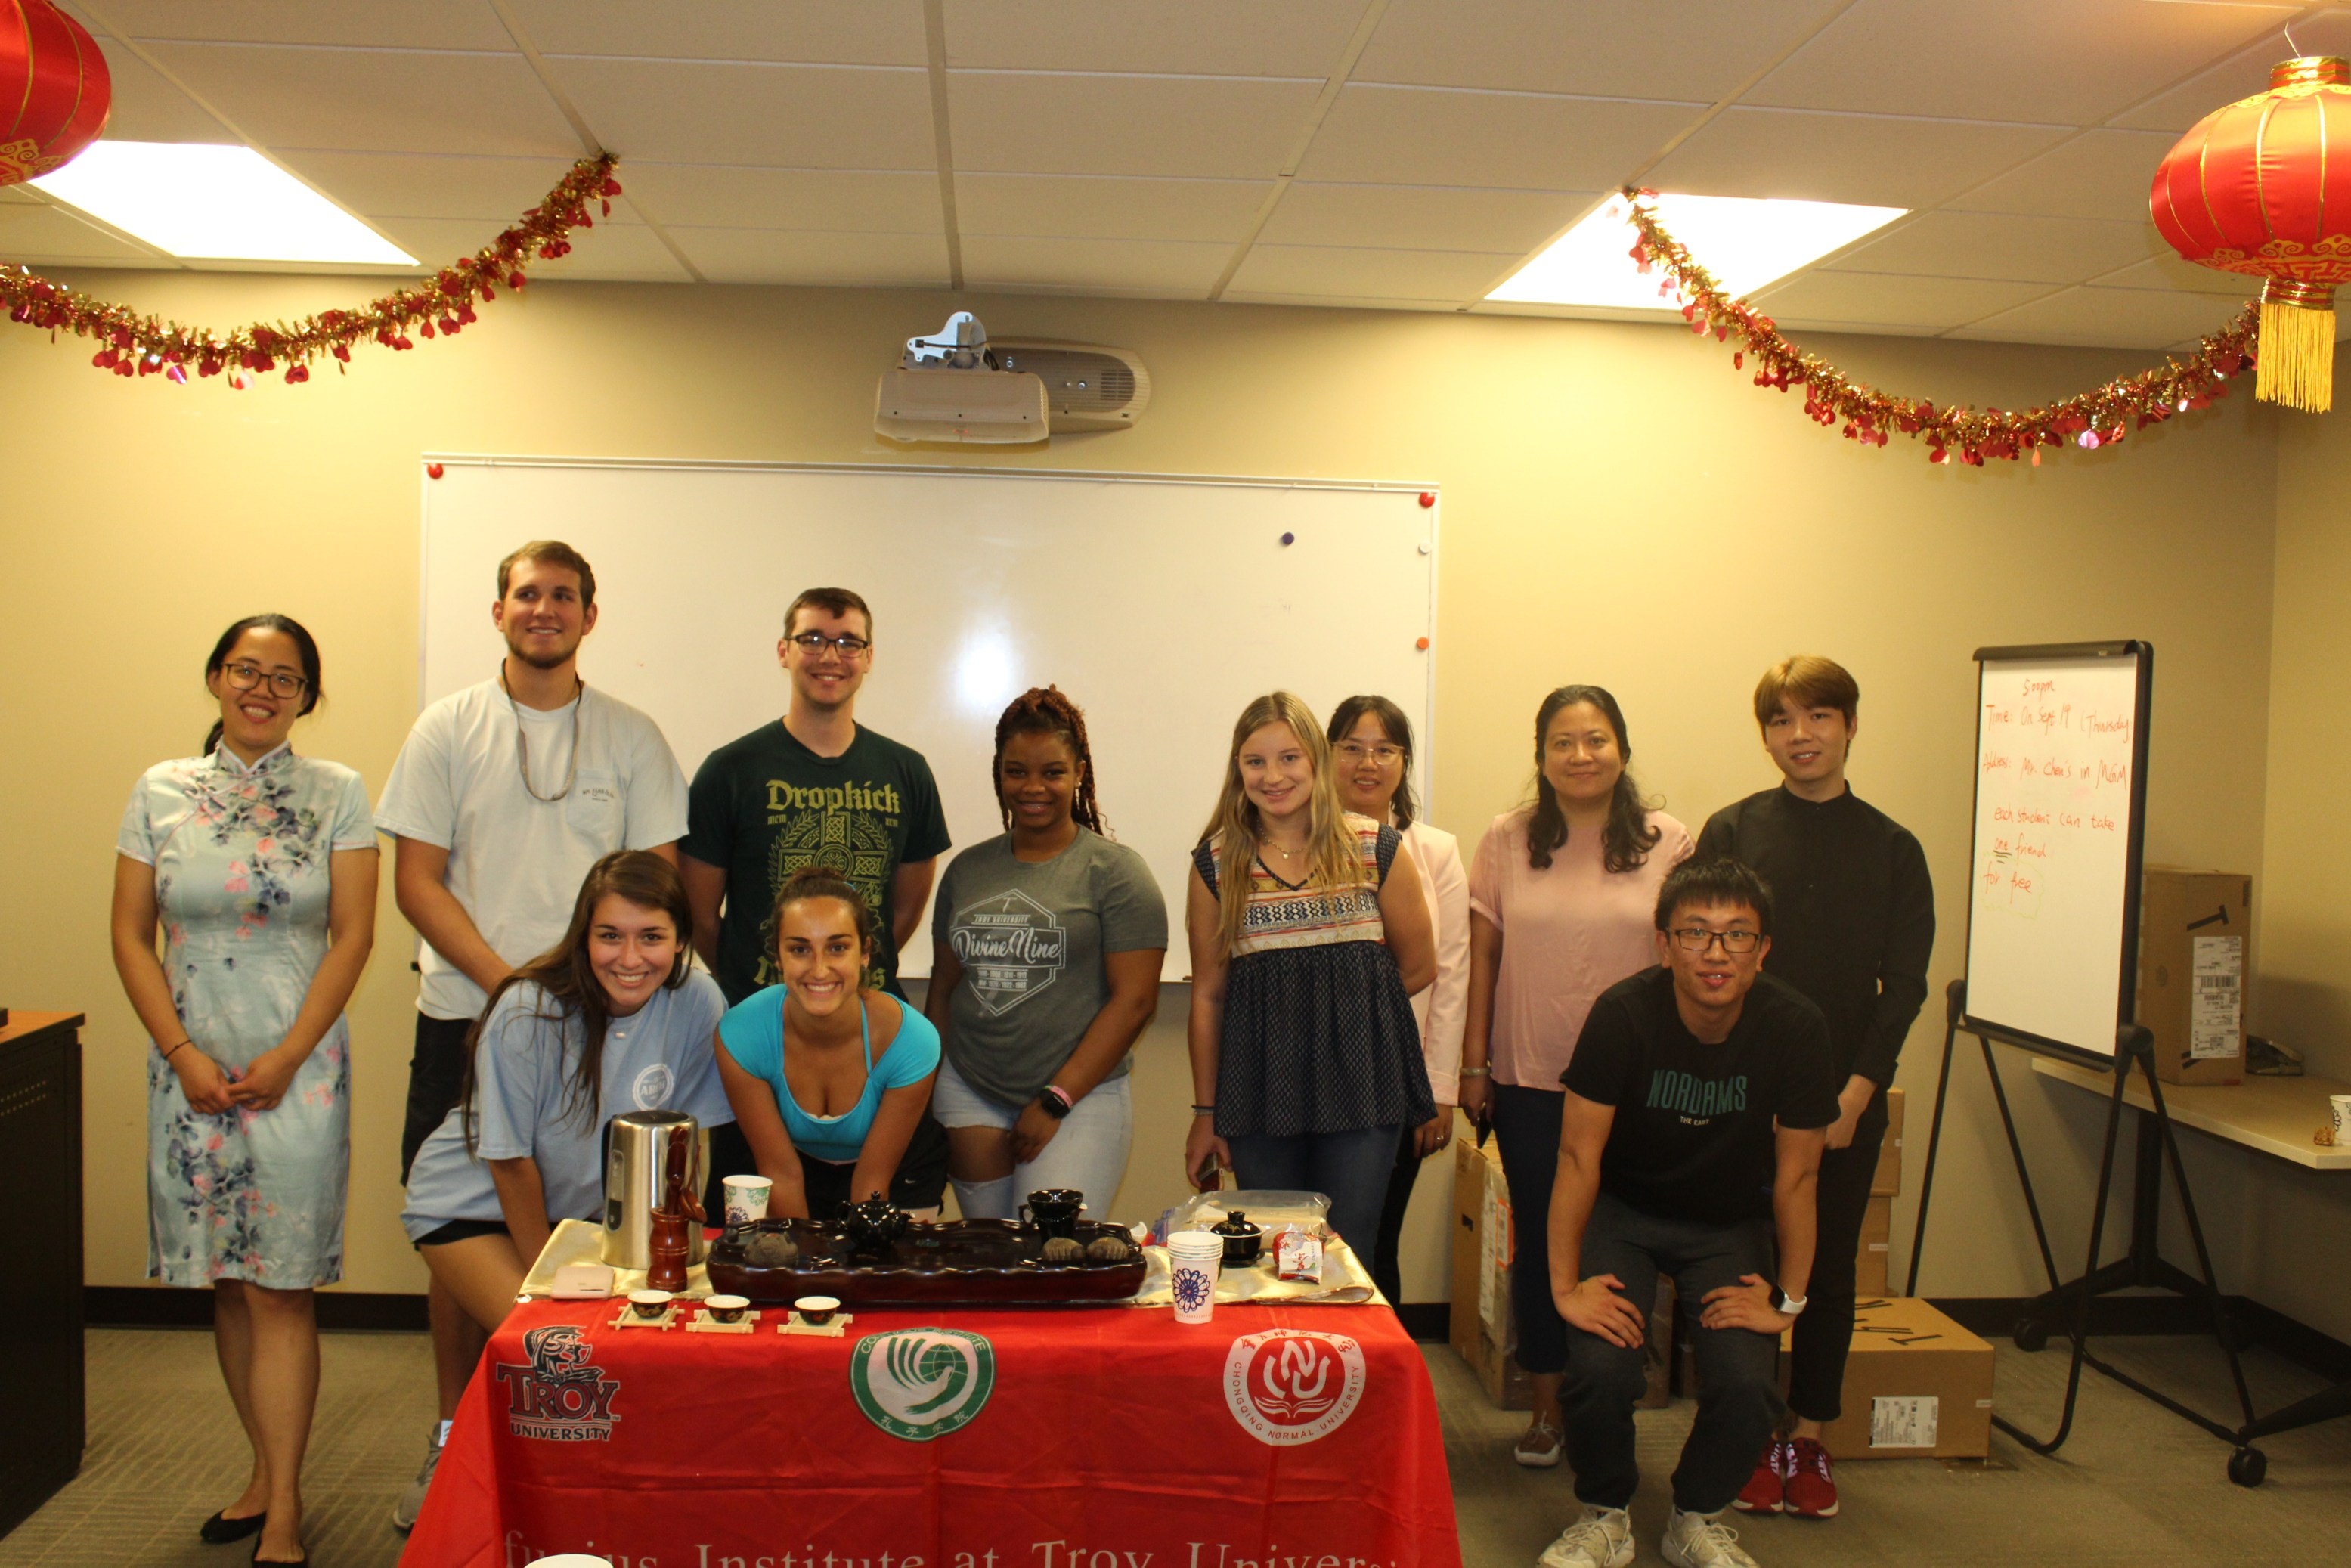 Students and Visiting Scholars pose together behind the Chinese Tea display.